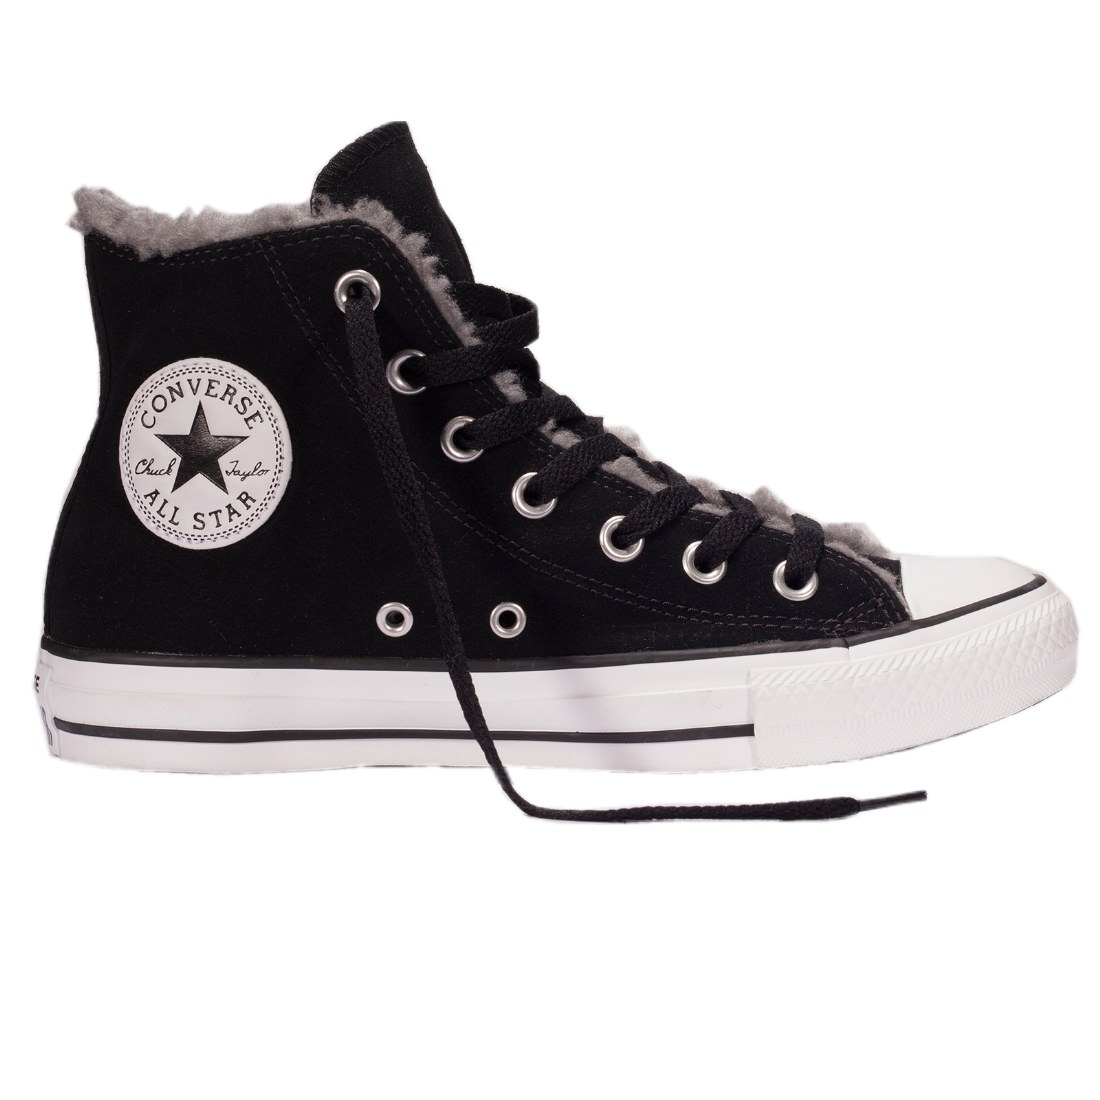 converse chuck taylor as hi shoes trainers winter shoes. Black Bedroom Furniture Sets. Home Design Ideas